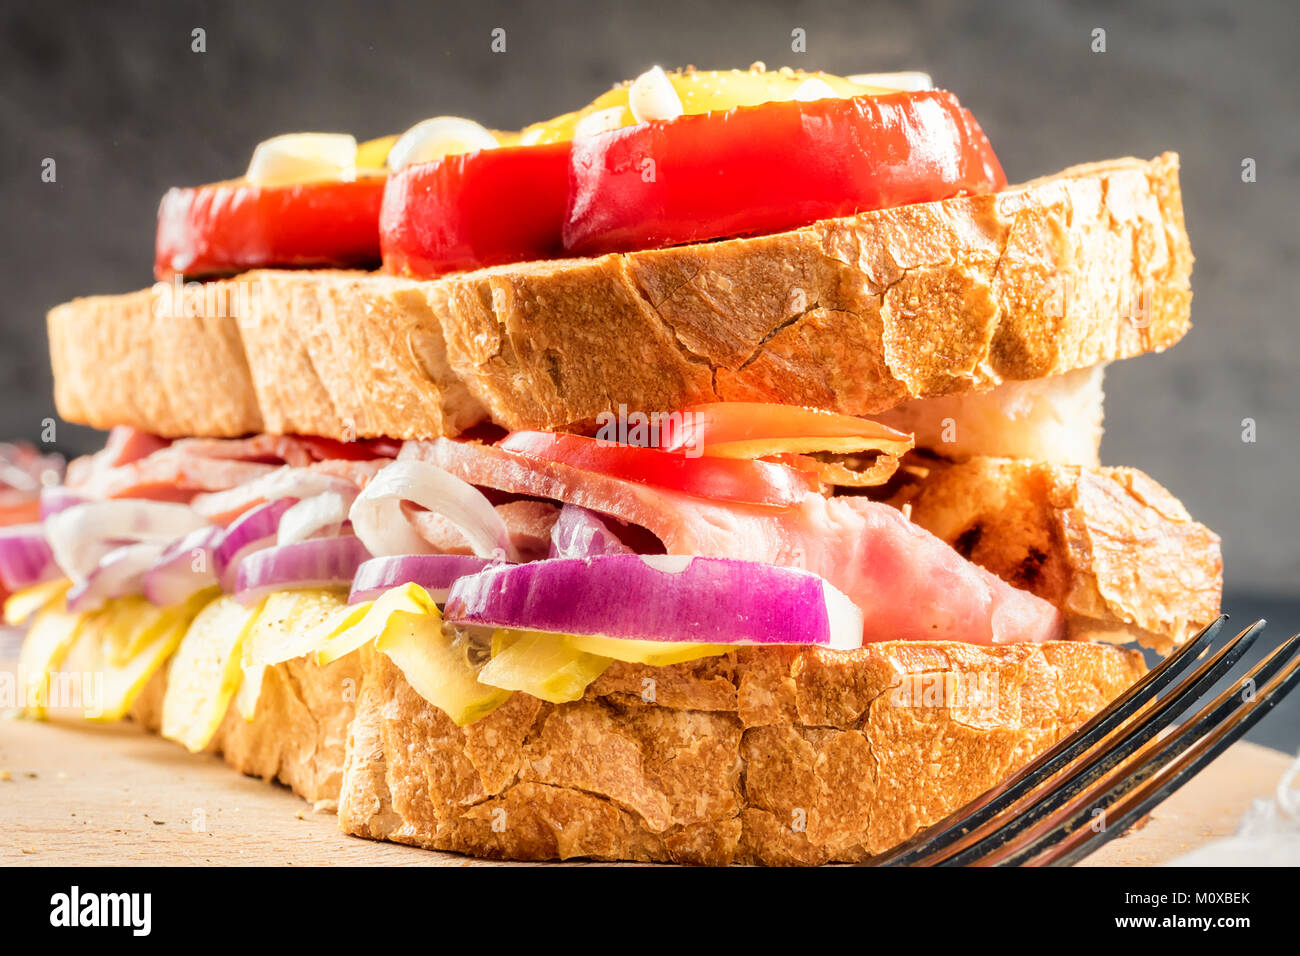 Fried egg fried in slice of red sweet pepper and sandwich with ham and seasonal vegetables on white plate. Food - Stock Image